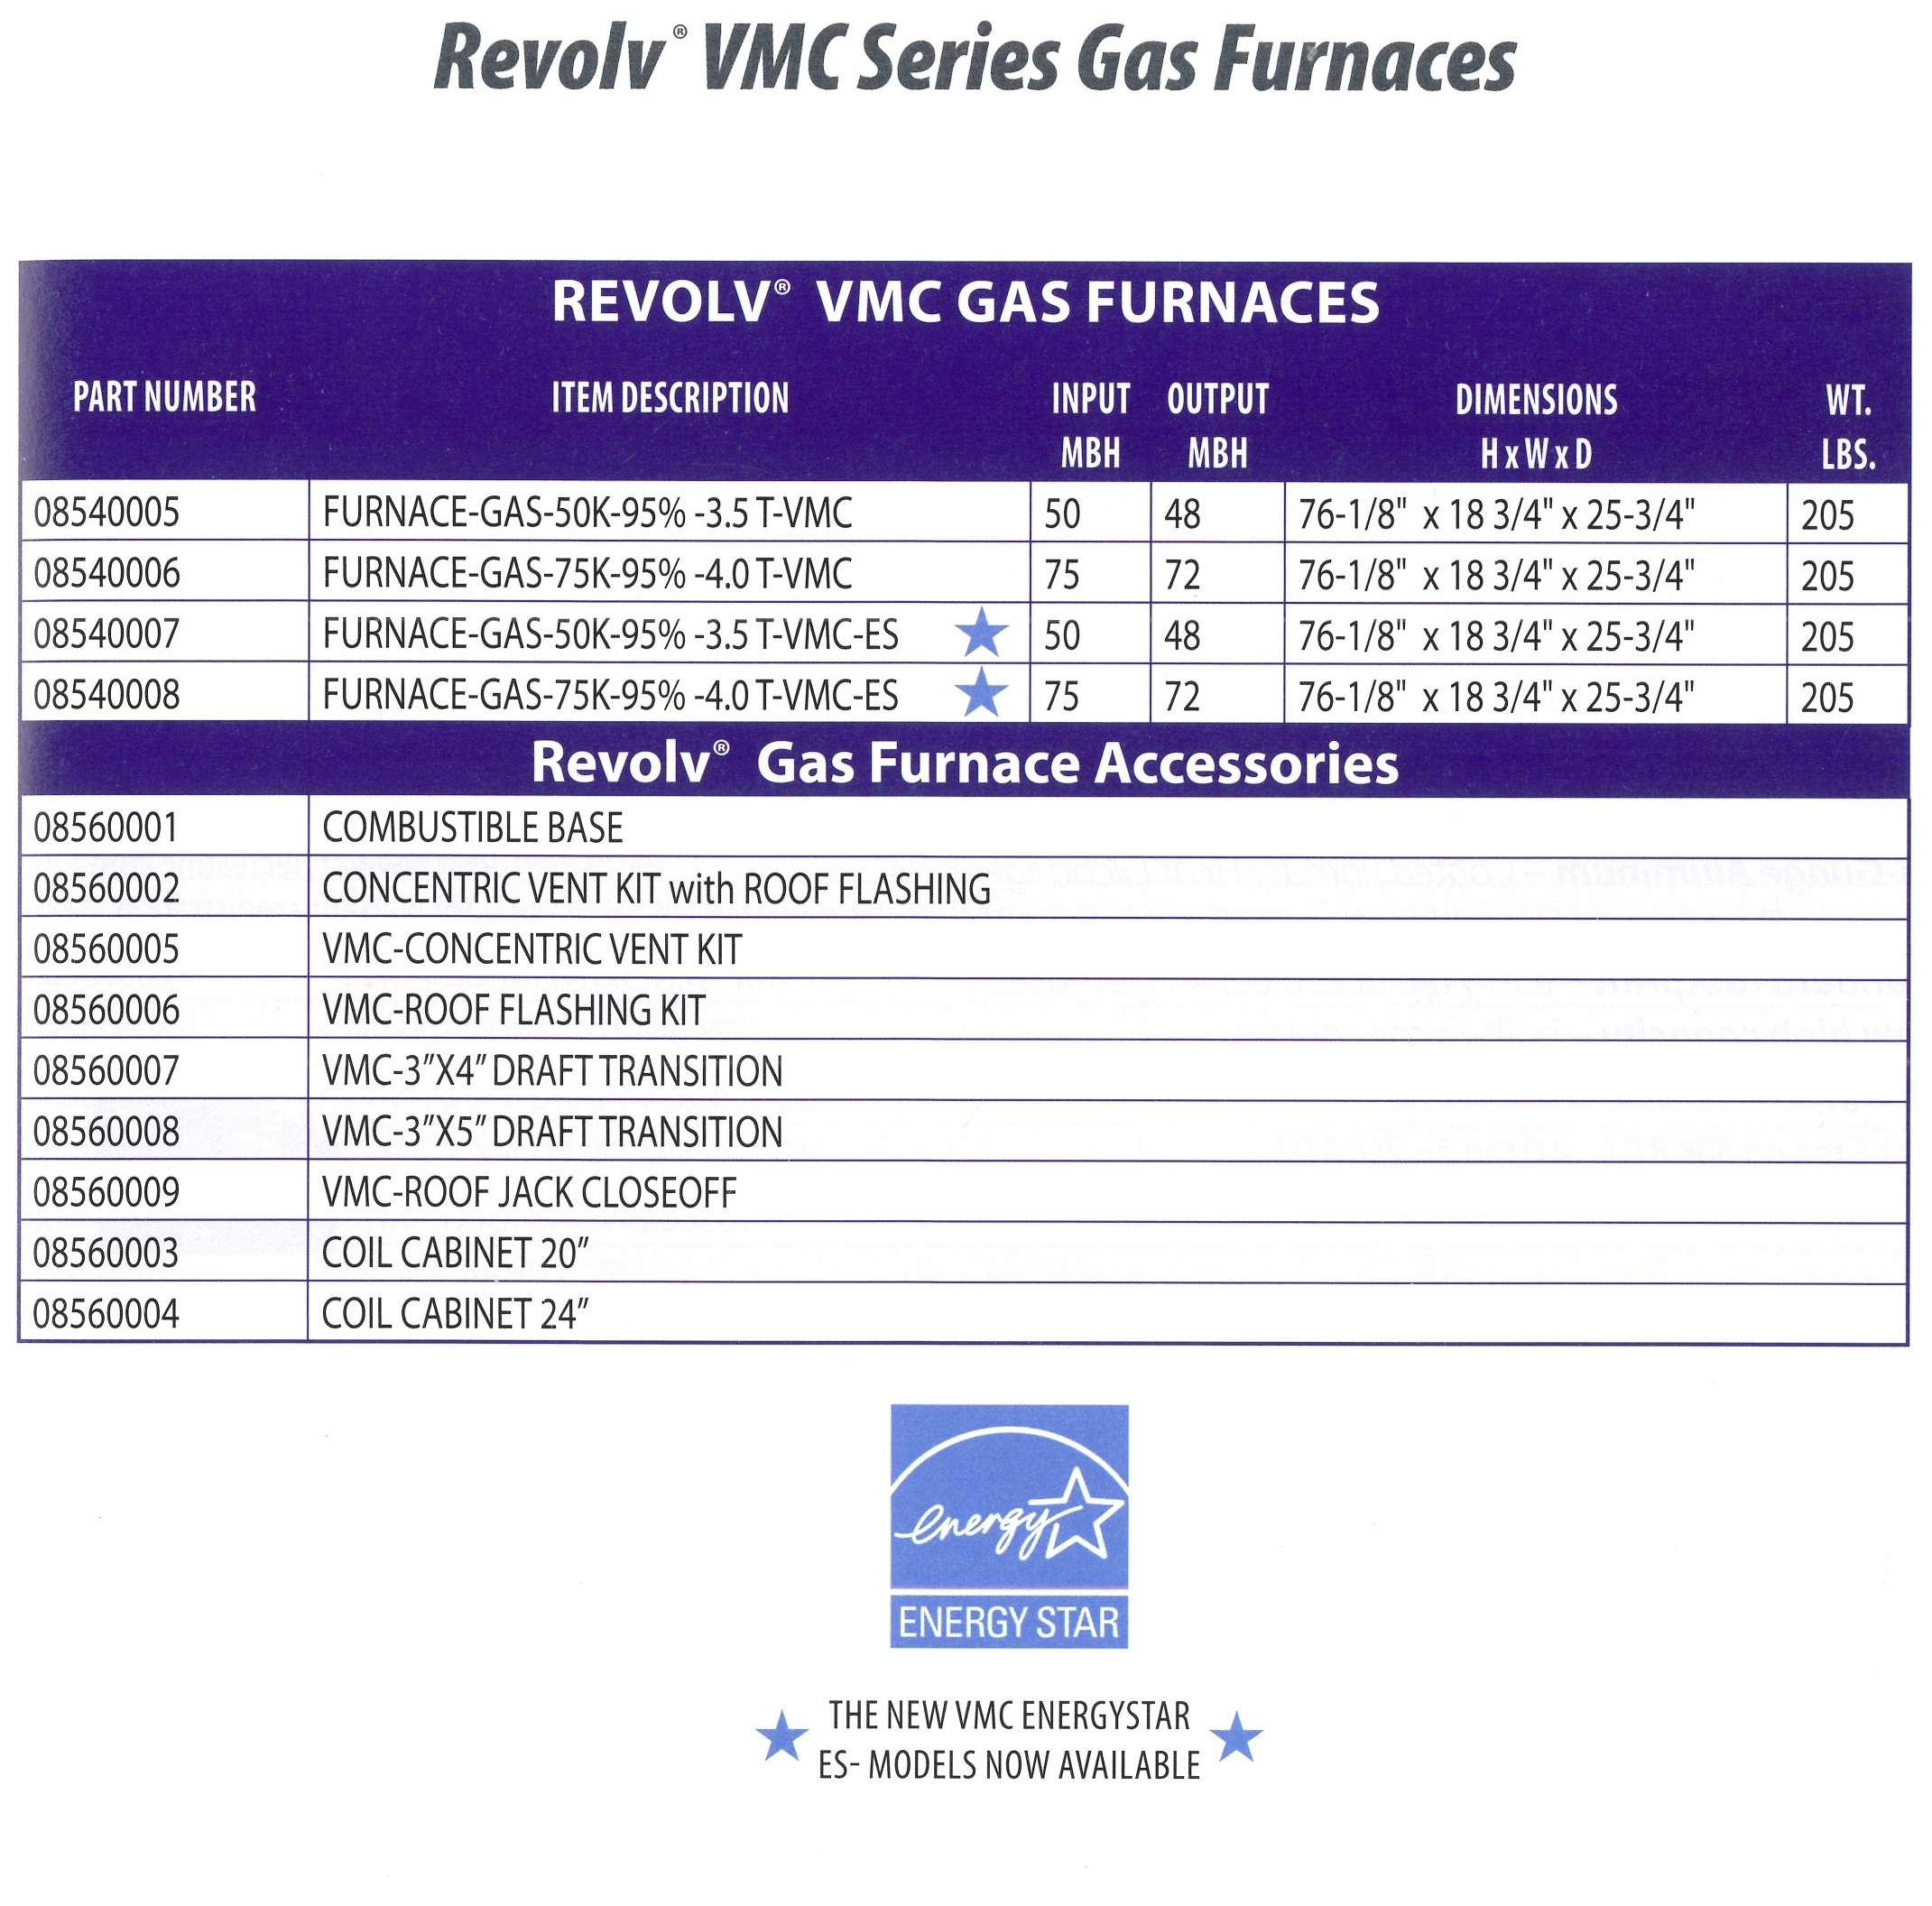 REVOLV VMC SERIES GAS FURNACES